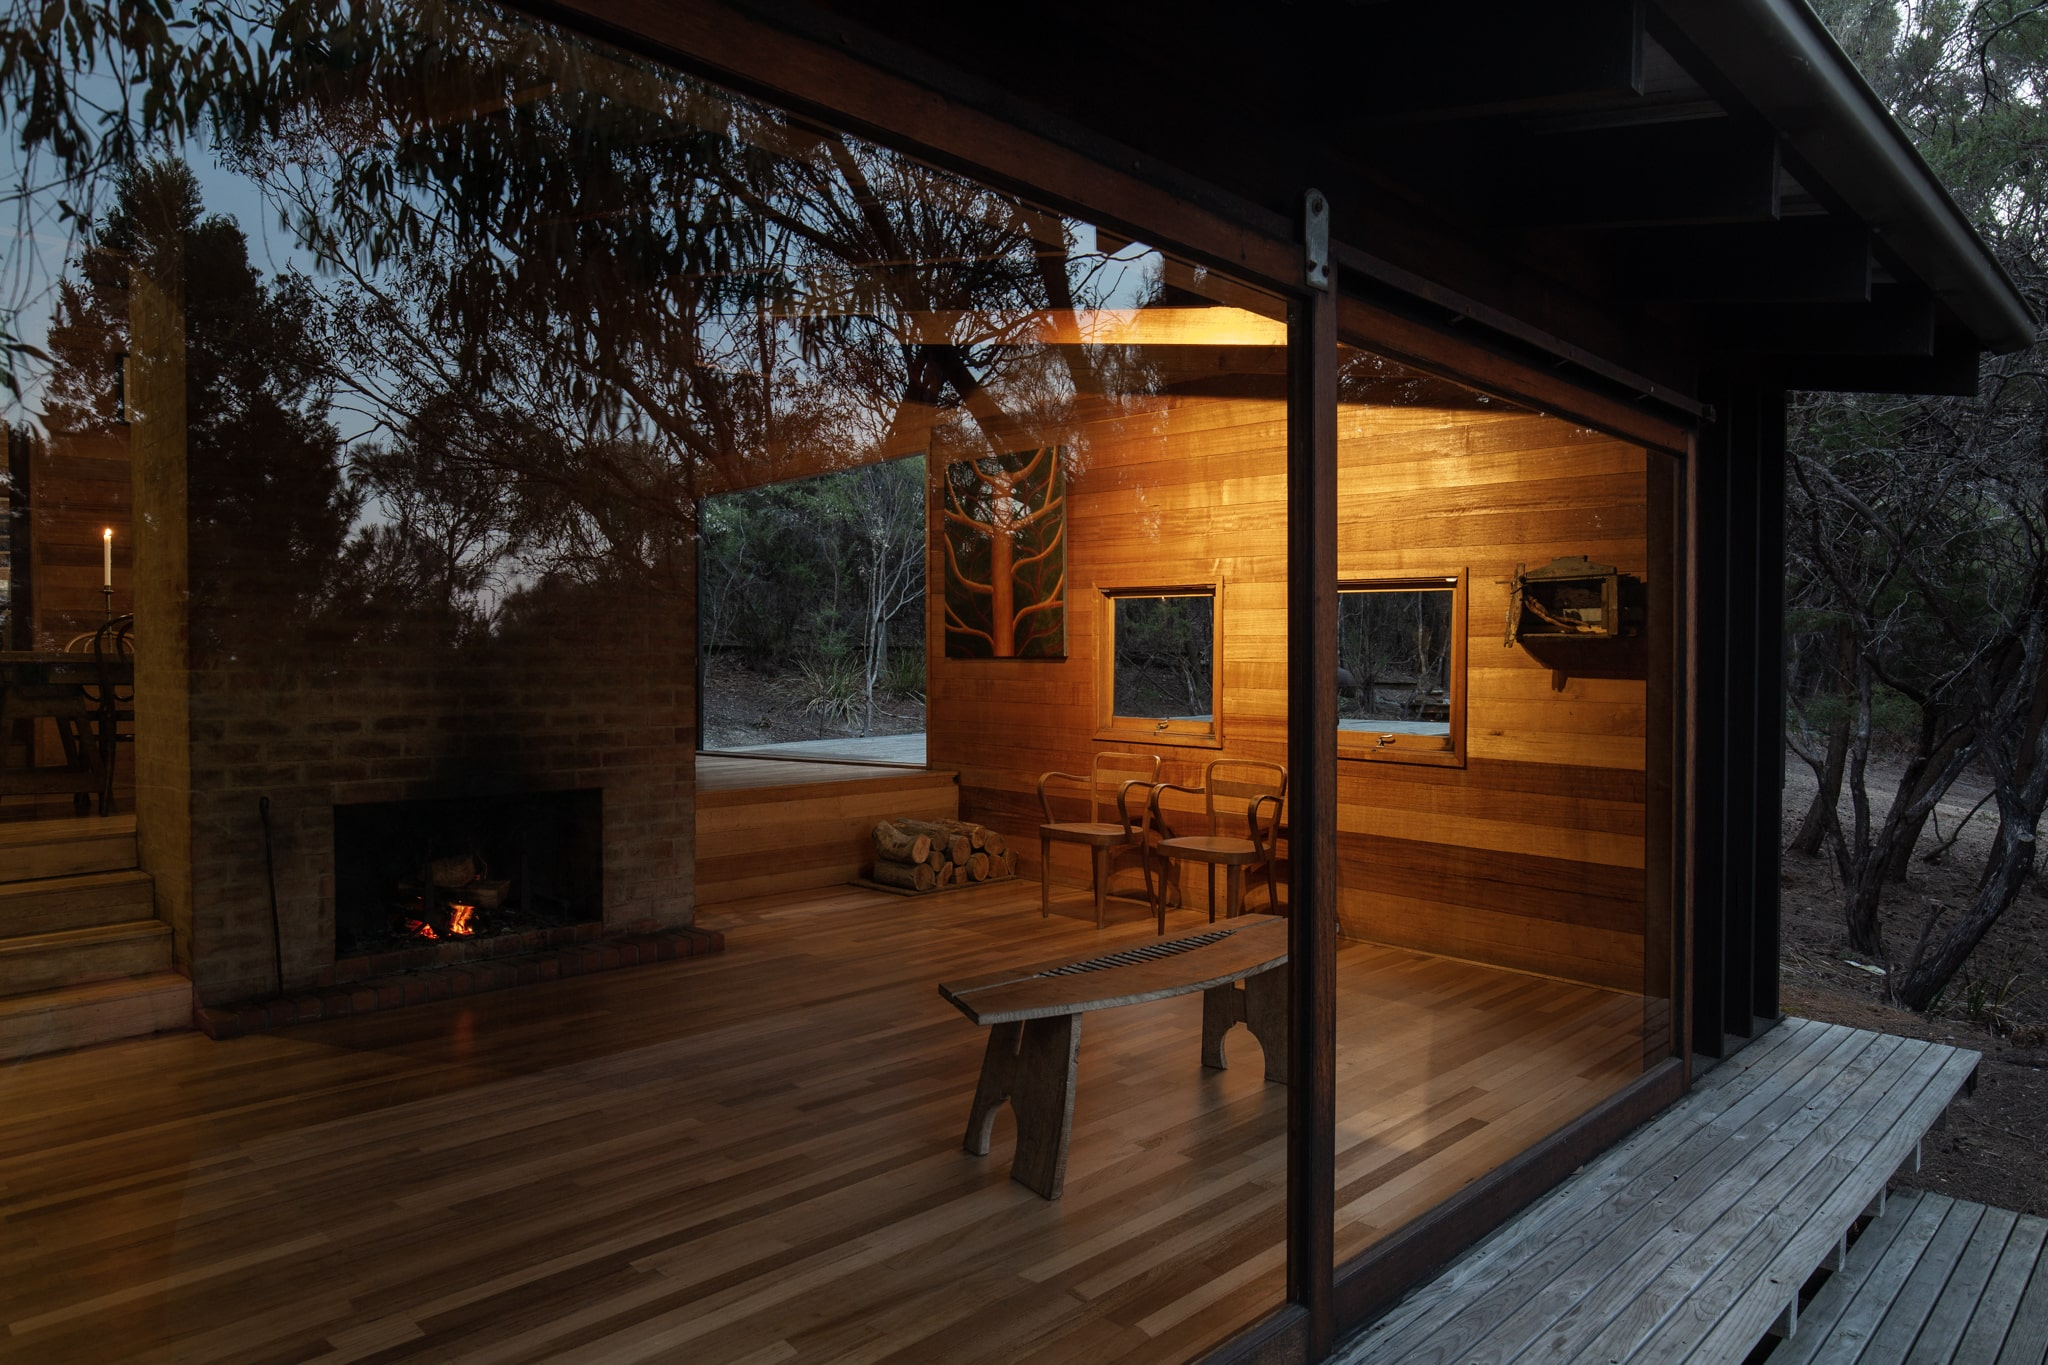 Ken And Then Business Partner Joan's Design Of Friendly Beaches Lodge Was At The Forefront Of Holistically Sustainable Ar